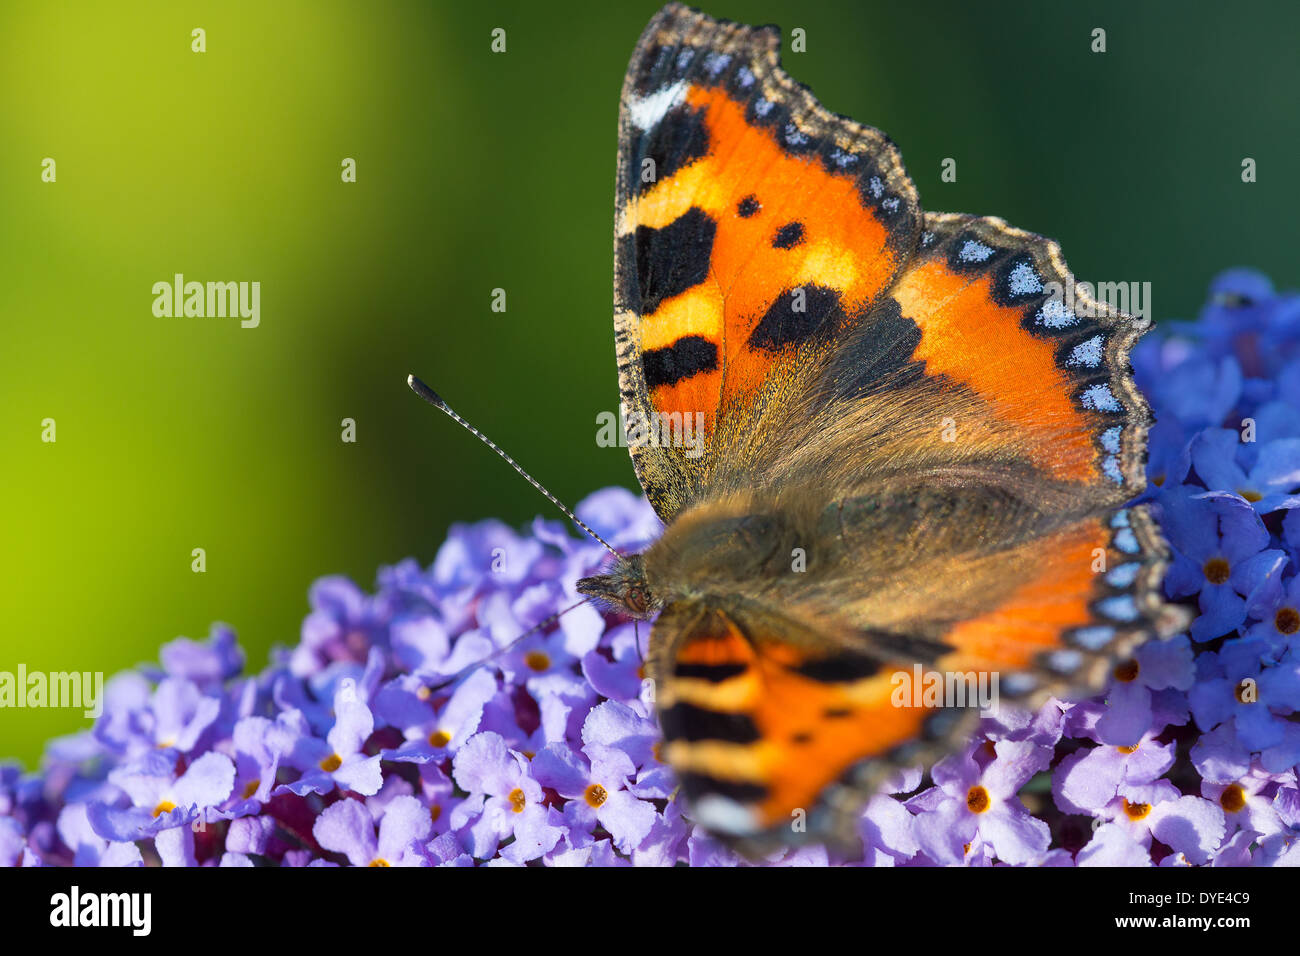 A Small Tortoiseshell butterfly (Aglais urticae) nectaring on Buddleia flowers - Stock Image